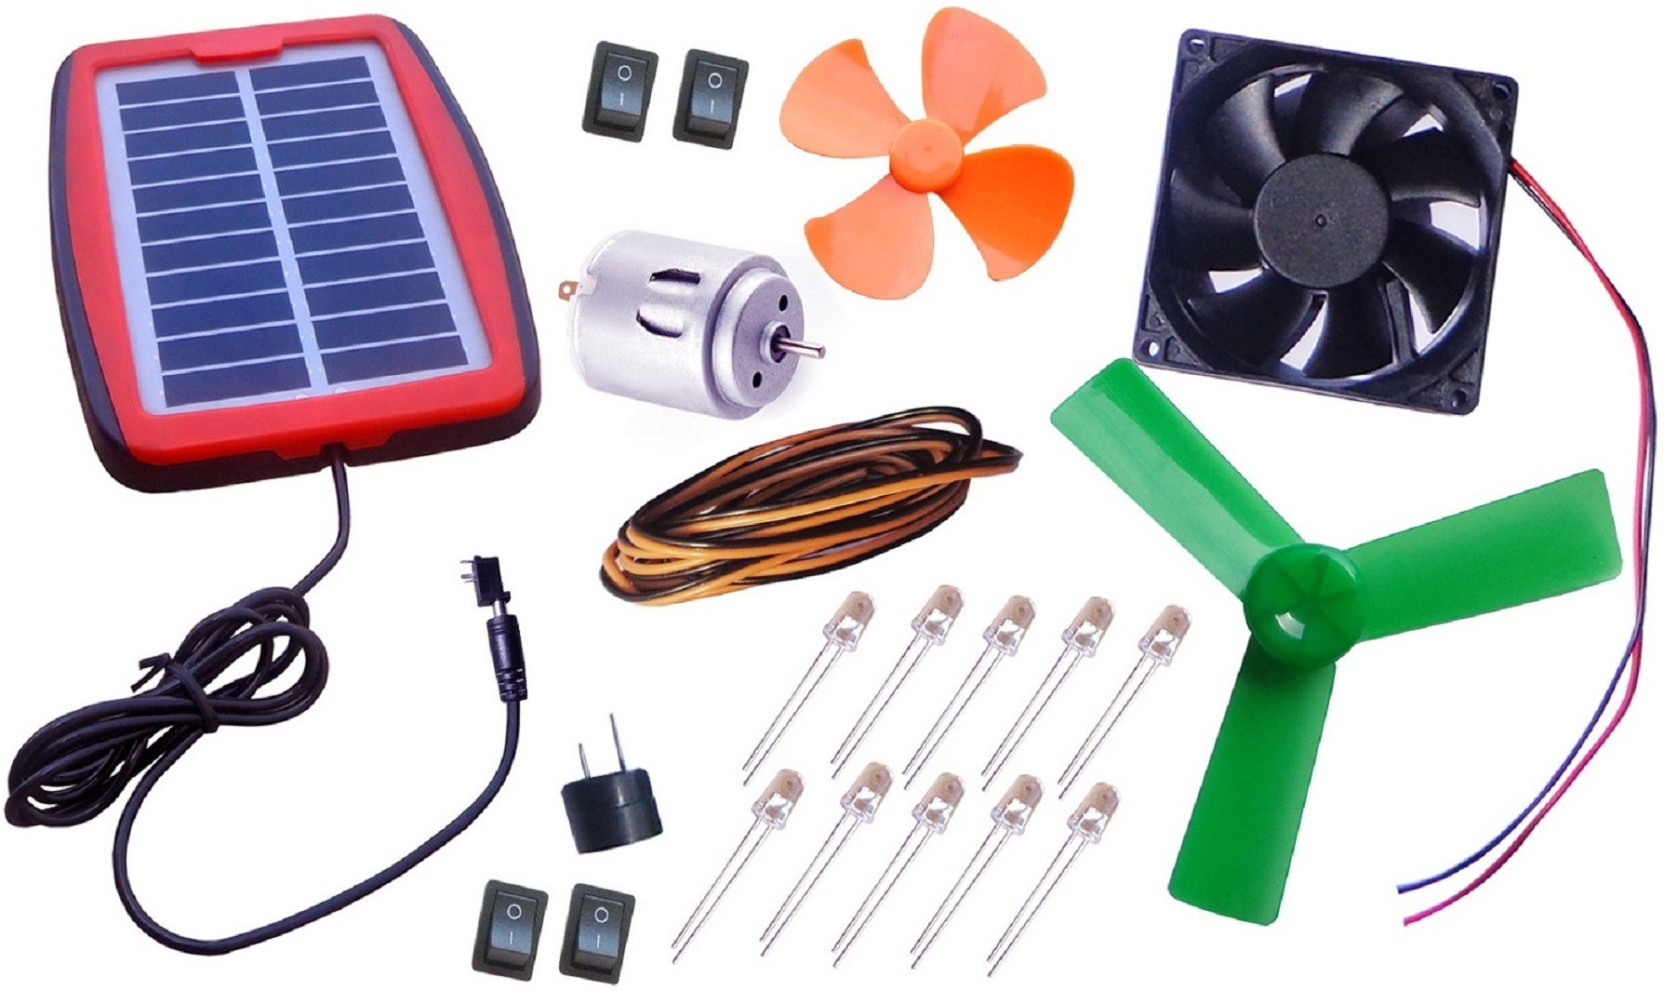 Project Maker Multipurpose Solar Energy Kit Price In India Buy By Electronic Projects Electrical Add To Cart